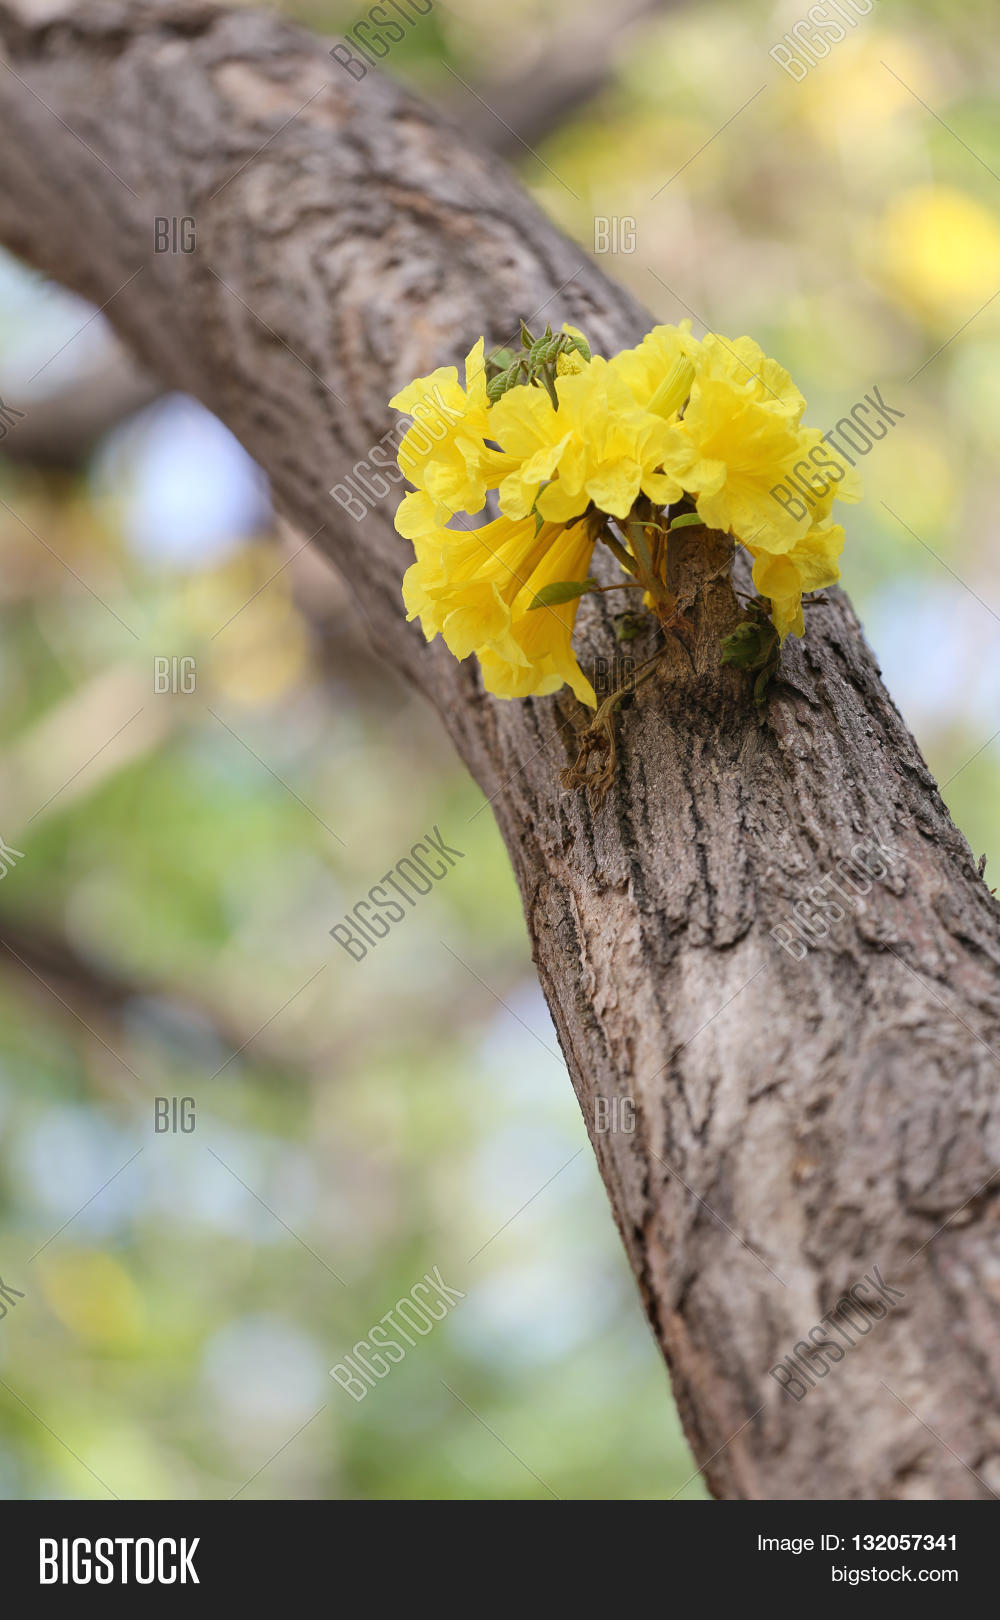 Tabebuia spectabilis image photo free trial bigstock tabebuia spectabilis flower or yellow tabebuia flower bloom on tree in the gardentropical yellow flowers a mightylinksfo